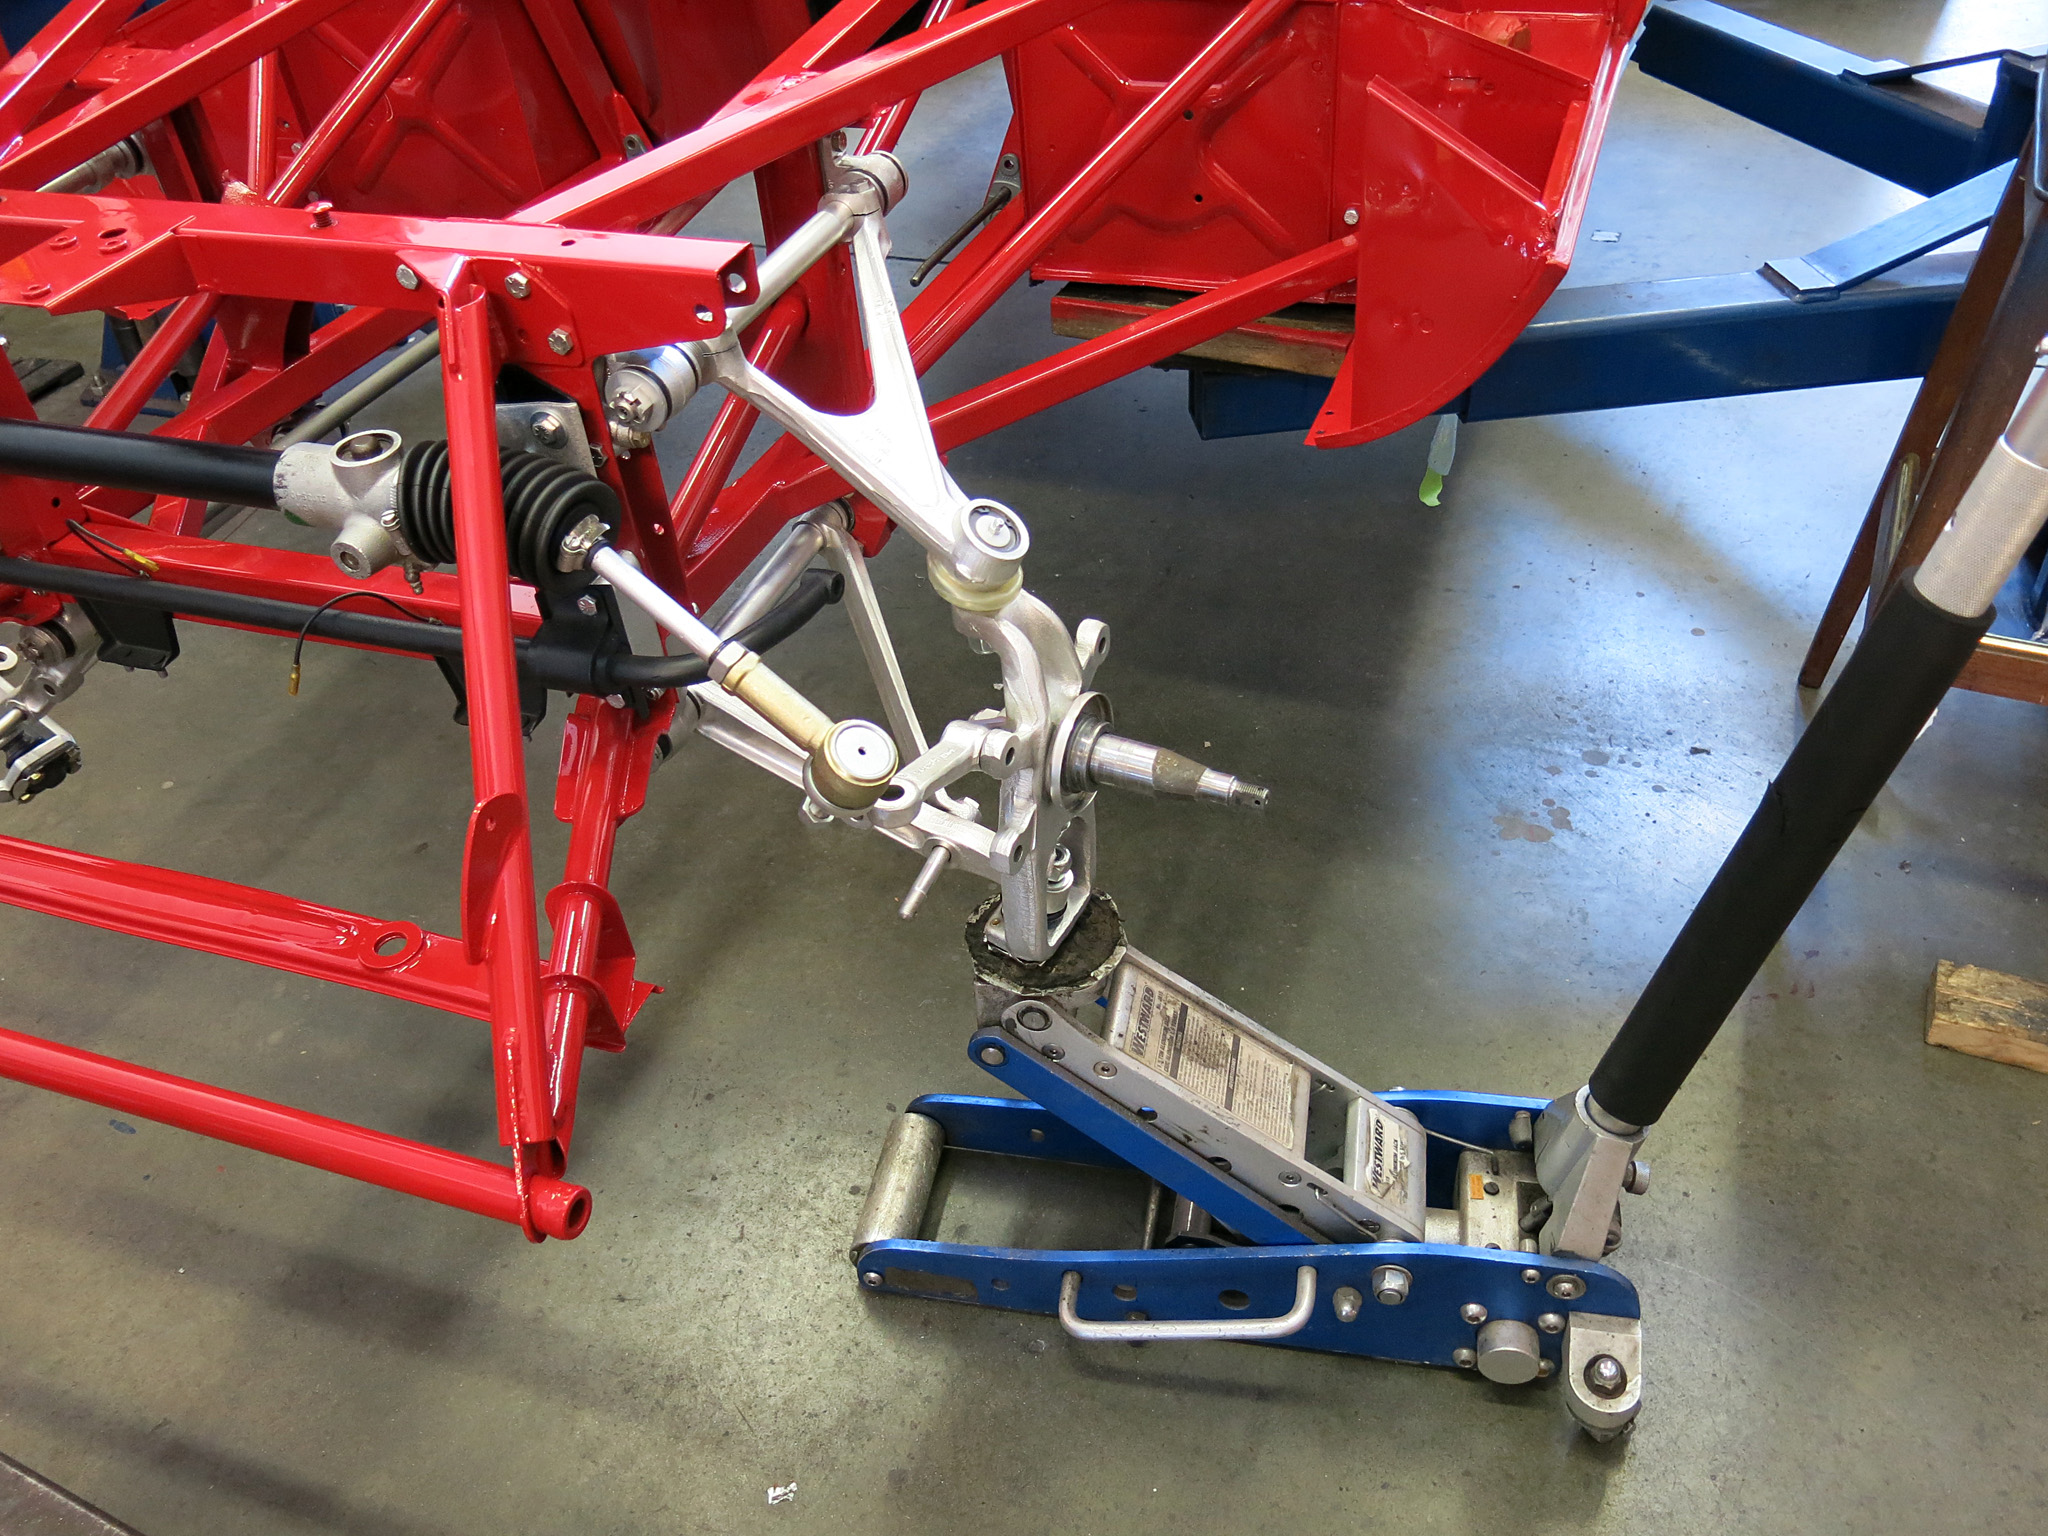 STEP 18 - The next couple steps link up the rest of the suspension with the jack pre-loading the torsion bar. Loosely attach the stub axle carriers with the provided (hopefully) nyloc nut to the lower control arm. With a jack and the car's weight you can mate up the top control arm.